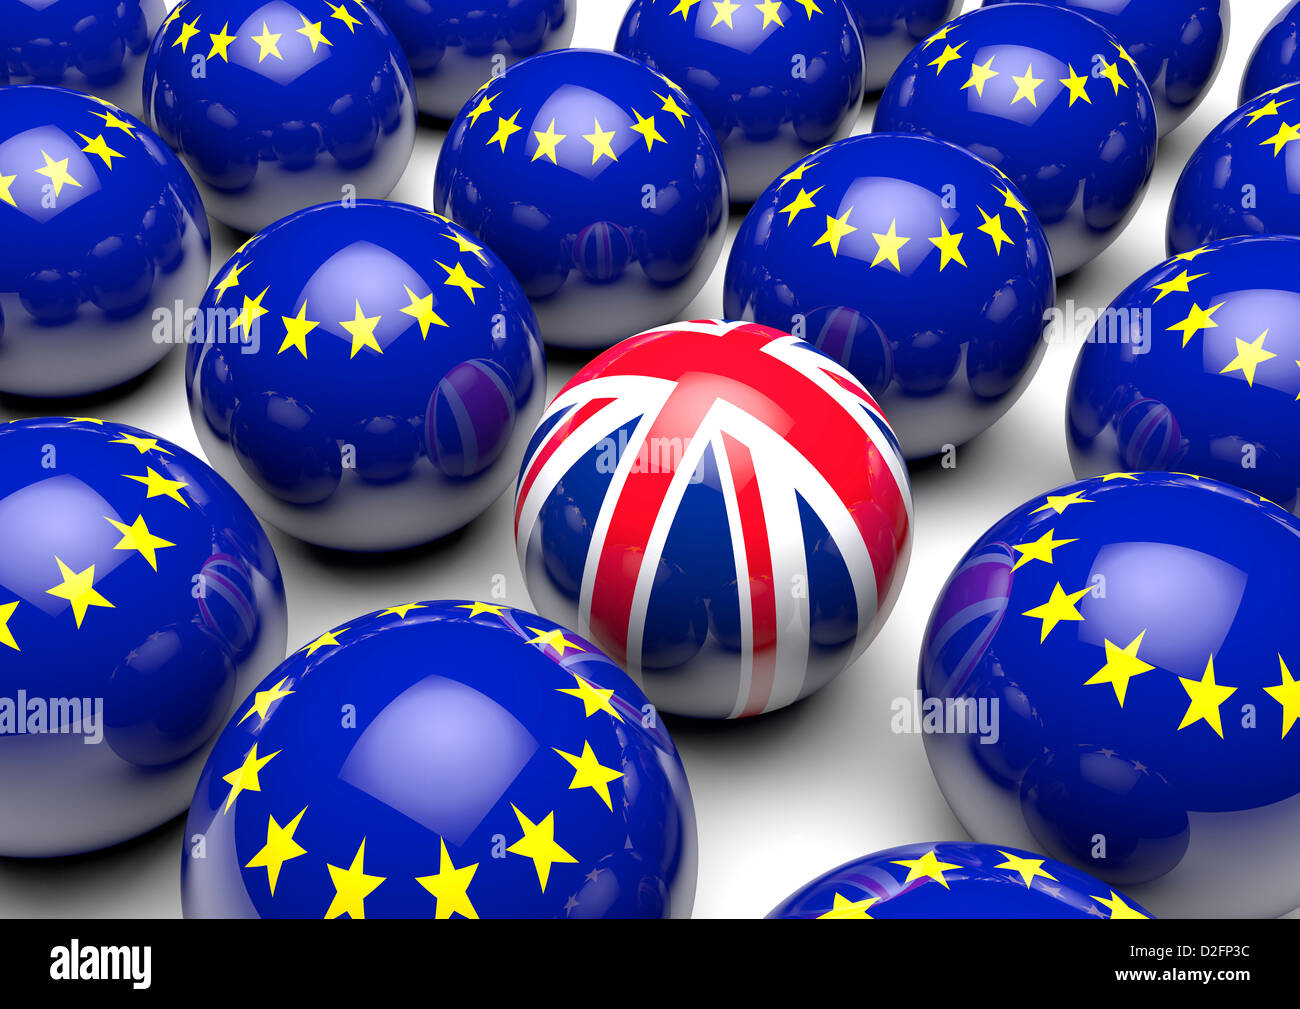 Close up of balls with the European Union Flag and one ball with the United Kingdom / UK Union Jack Flag - Brexit - Stock Image